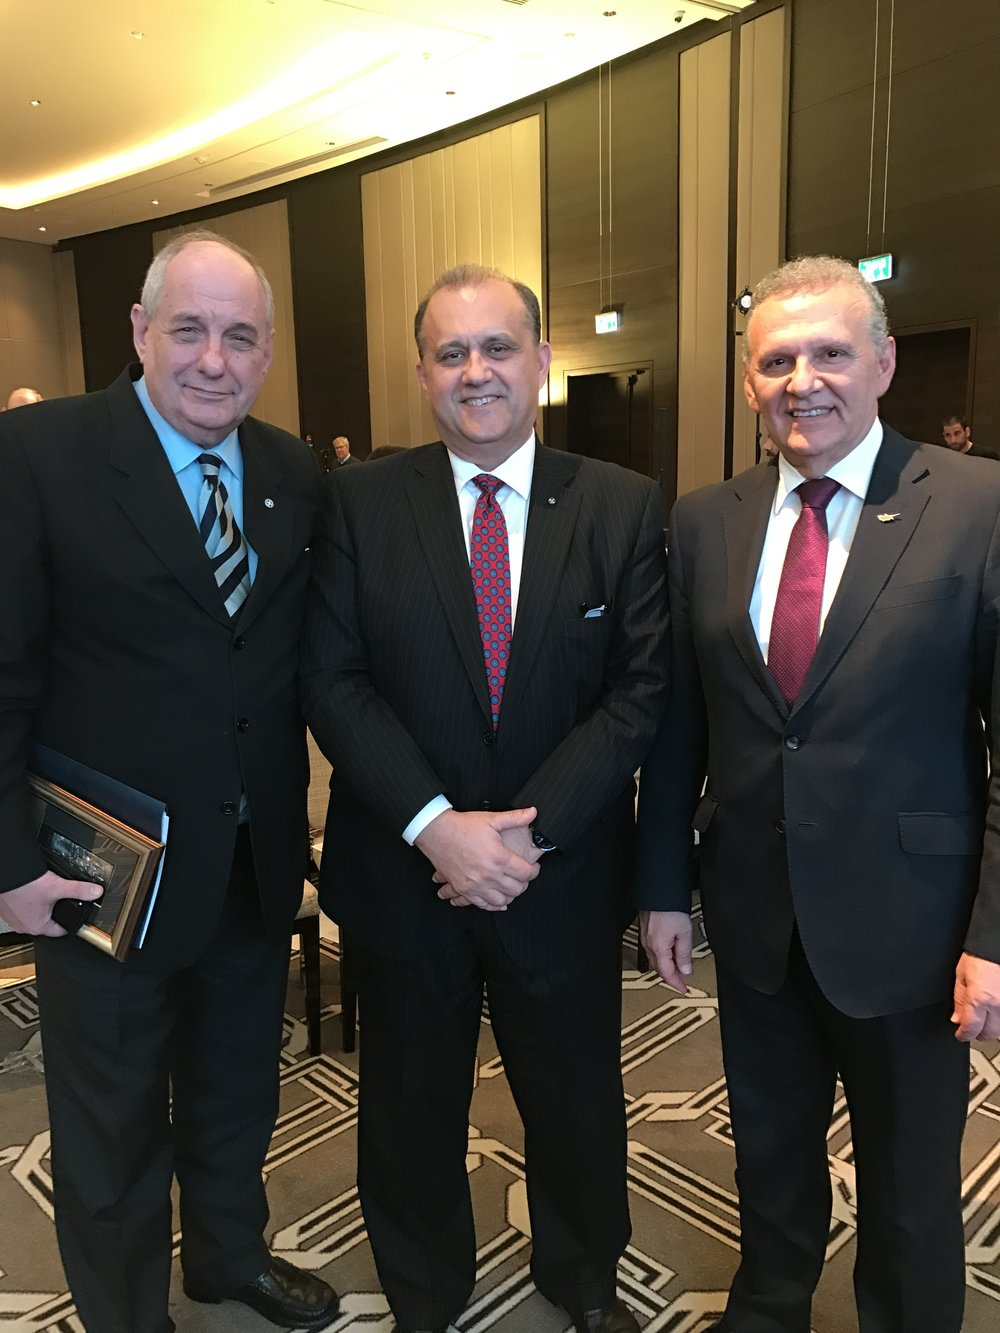 Nick Larigakis (C) With Greek Deputy Minister Of Foreign Affairs, Terens Quick (L), and Cypriot Presidential Commissioner Photis Photiou (R)